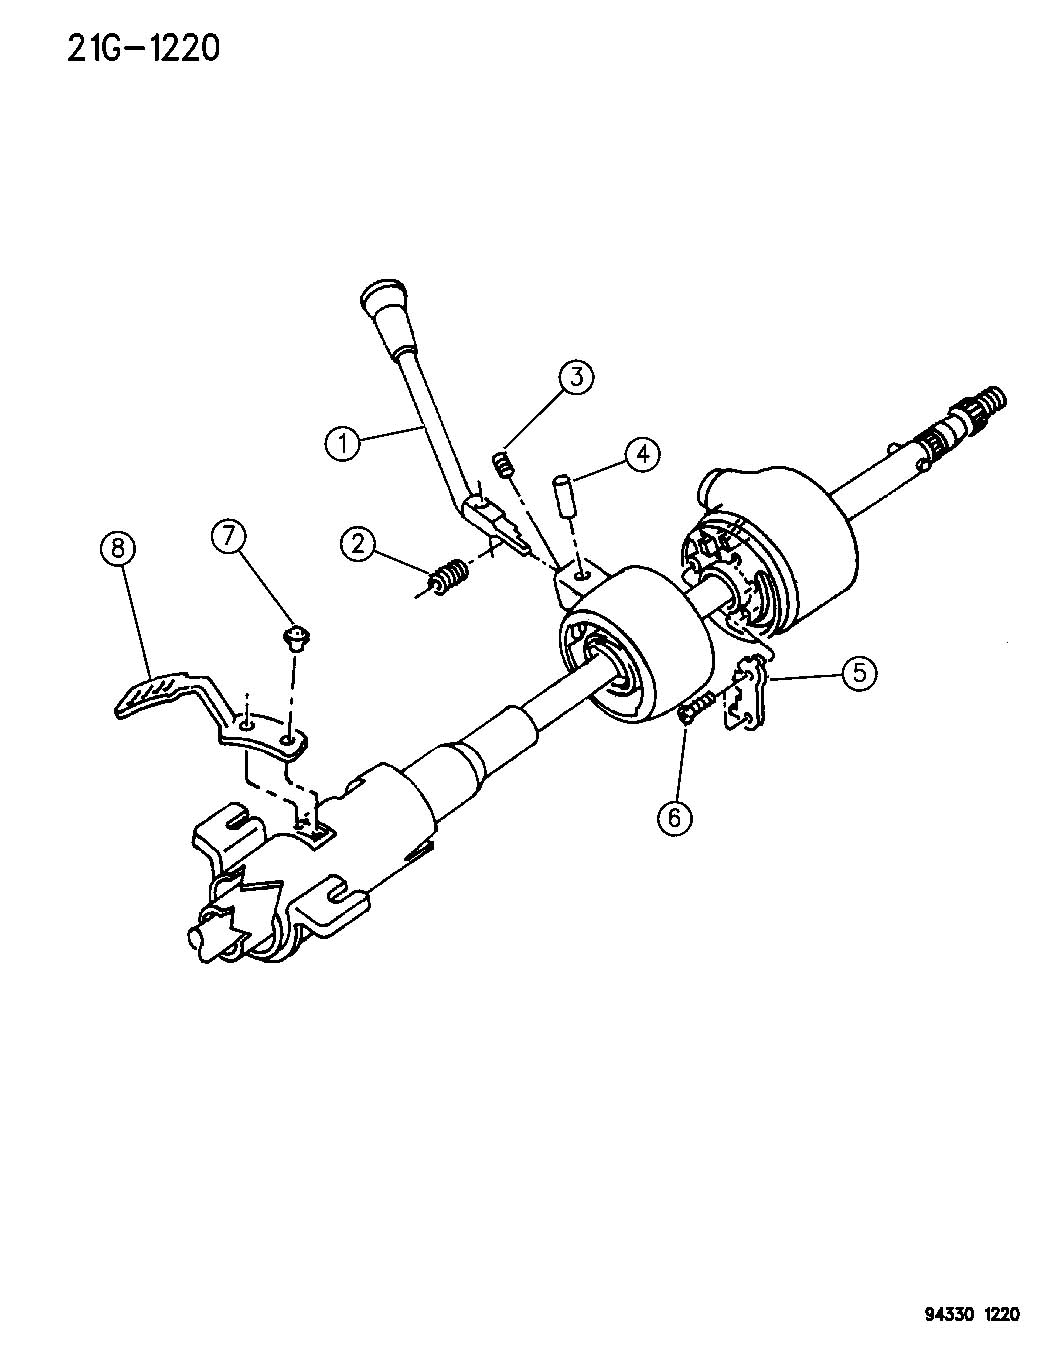 Controls Gearshift Steering Column Shift With And